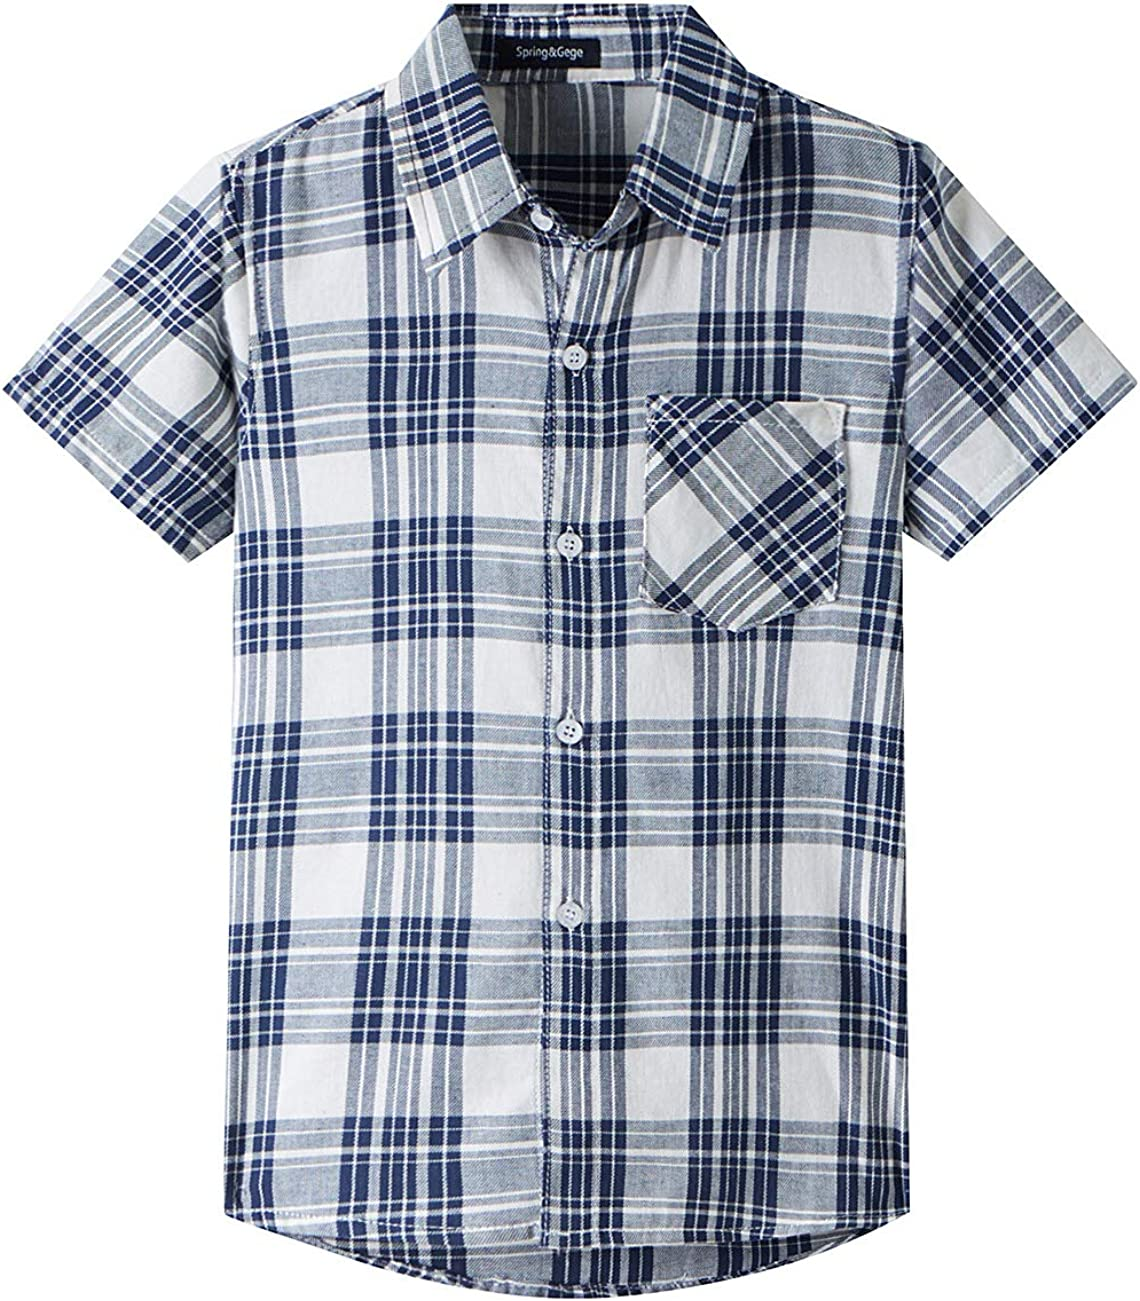 Spring&Gege Boys' Casual Short Sleeve Button Down Shirts Cotton Plaid: Clothing